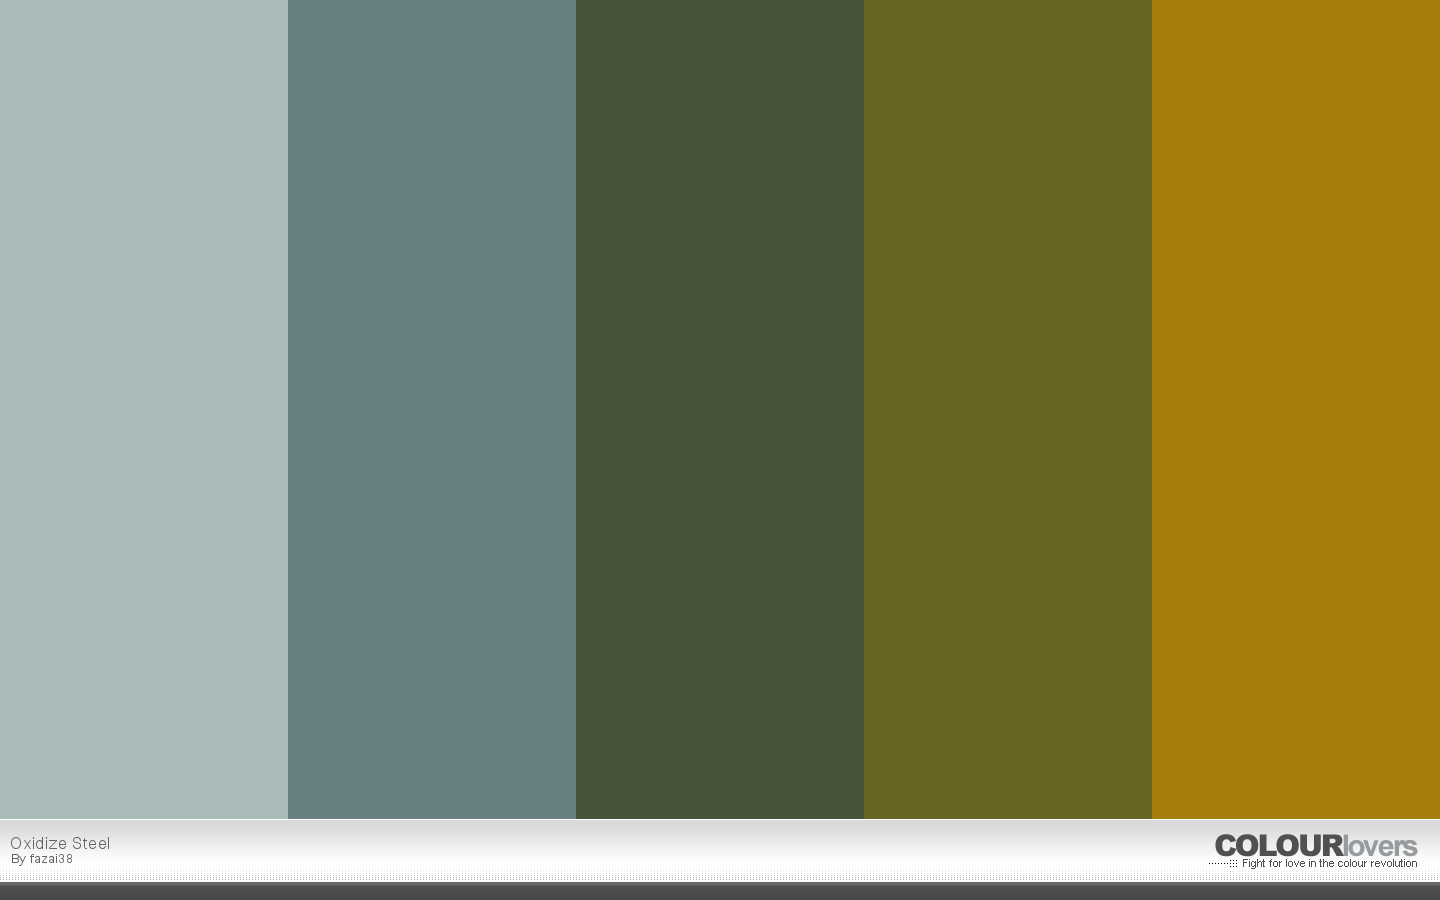 16. oxidize steel - metallic color palettes to try